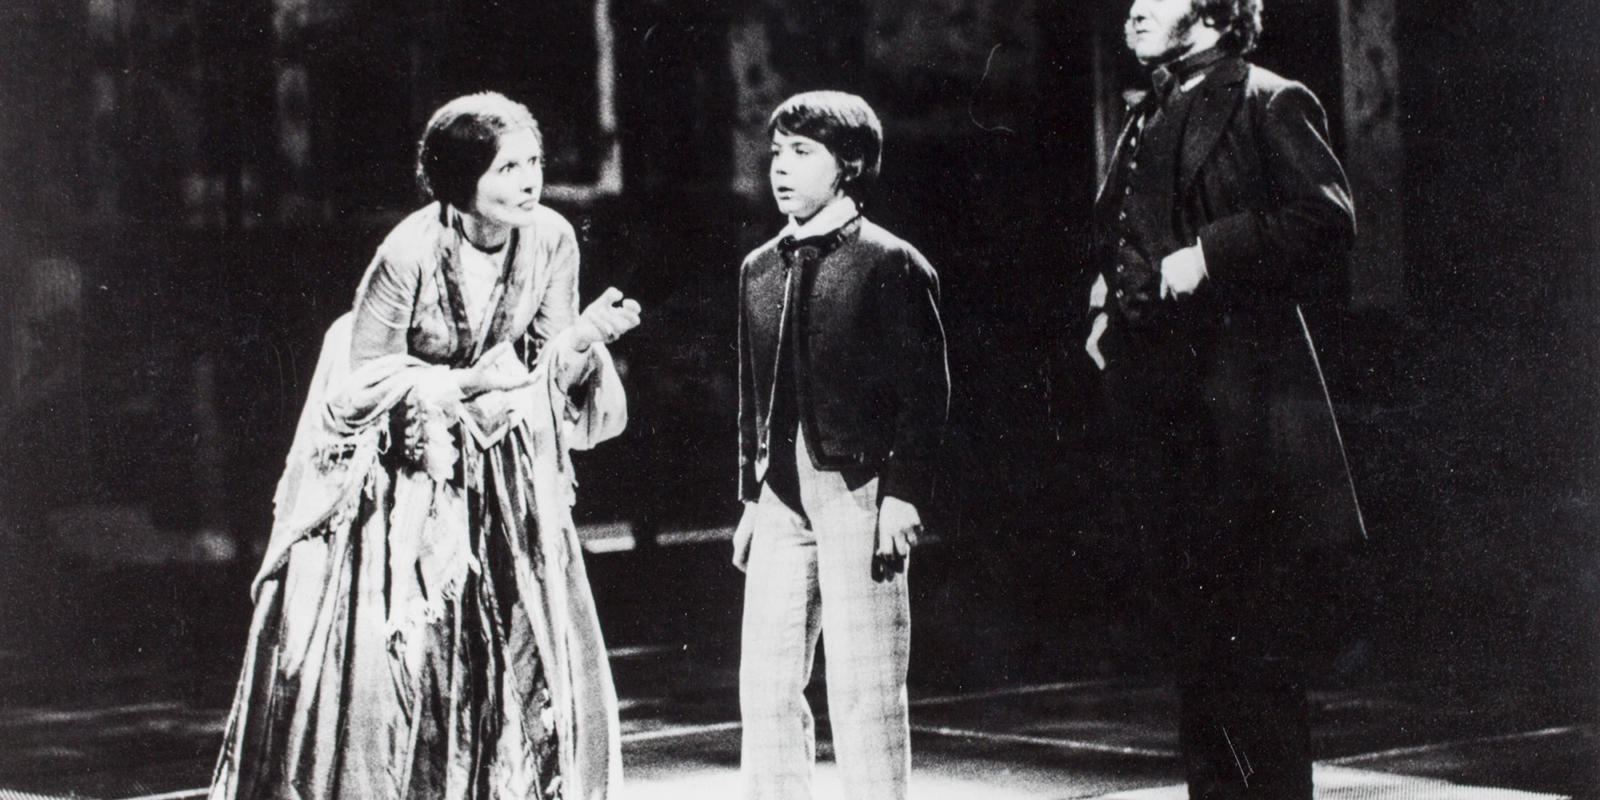 ENO The Turn of the Screw 1979: Eilene Hannan as The Governess and Michael Ginn as Miles with Phlip Langridge as Peter Quint. With thanks to Gareth Roberts.